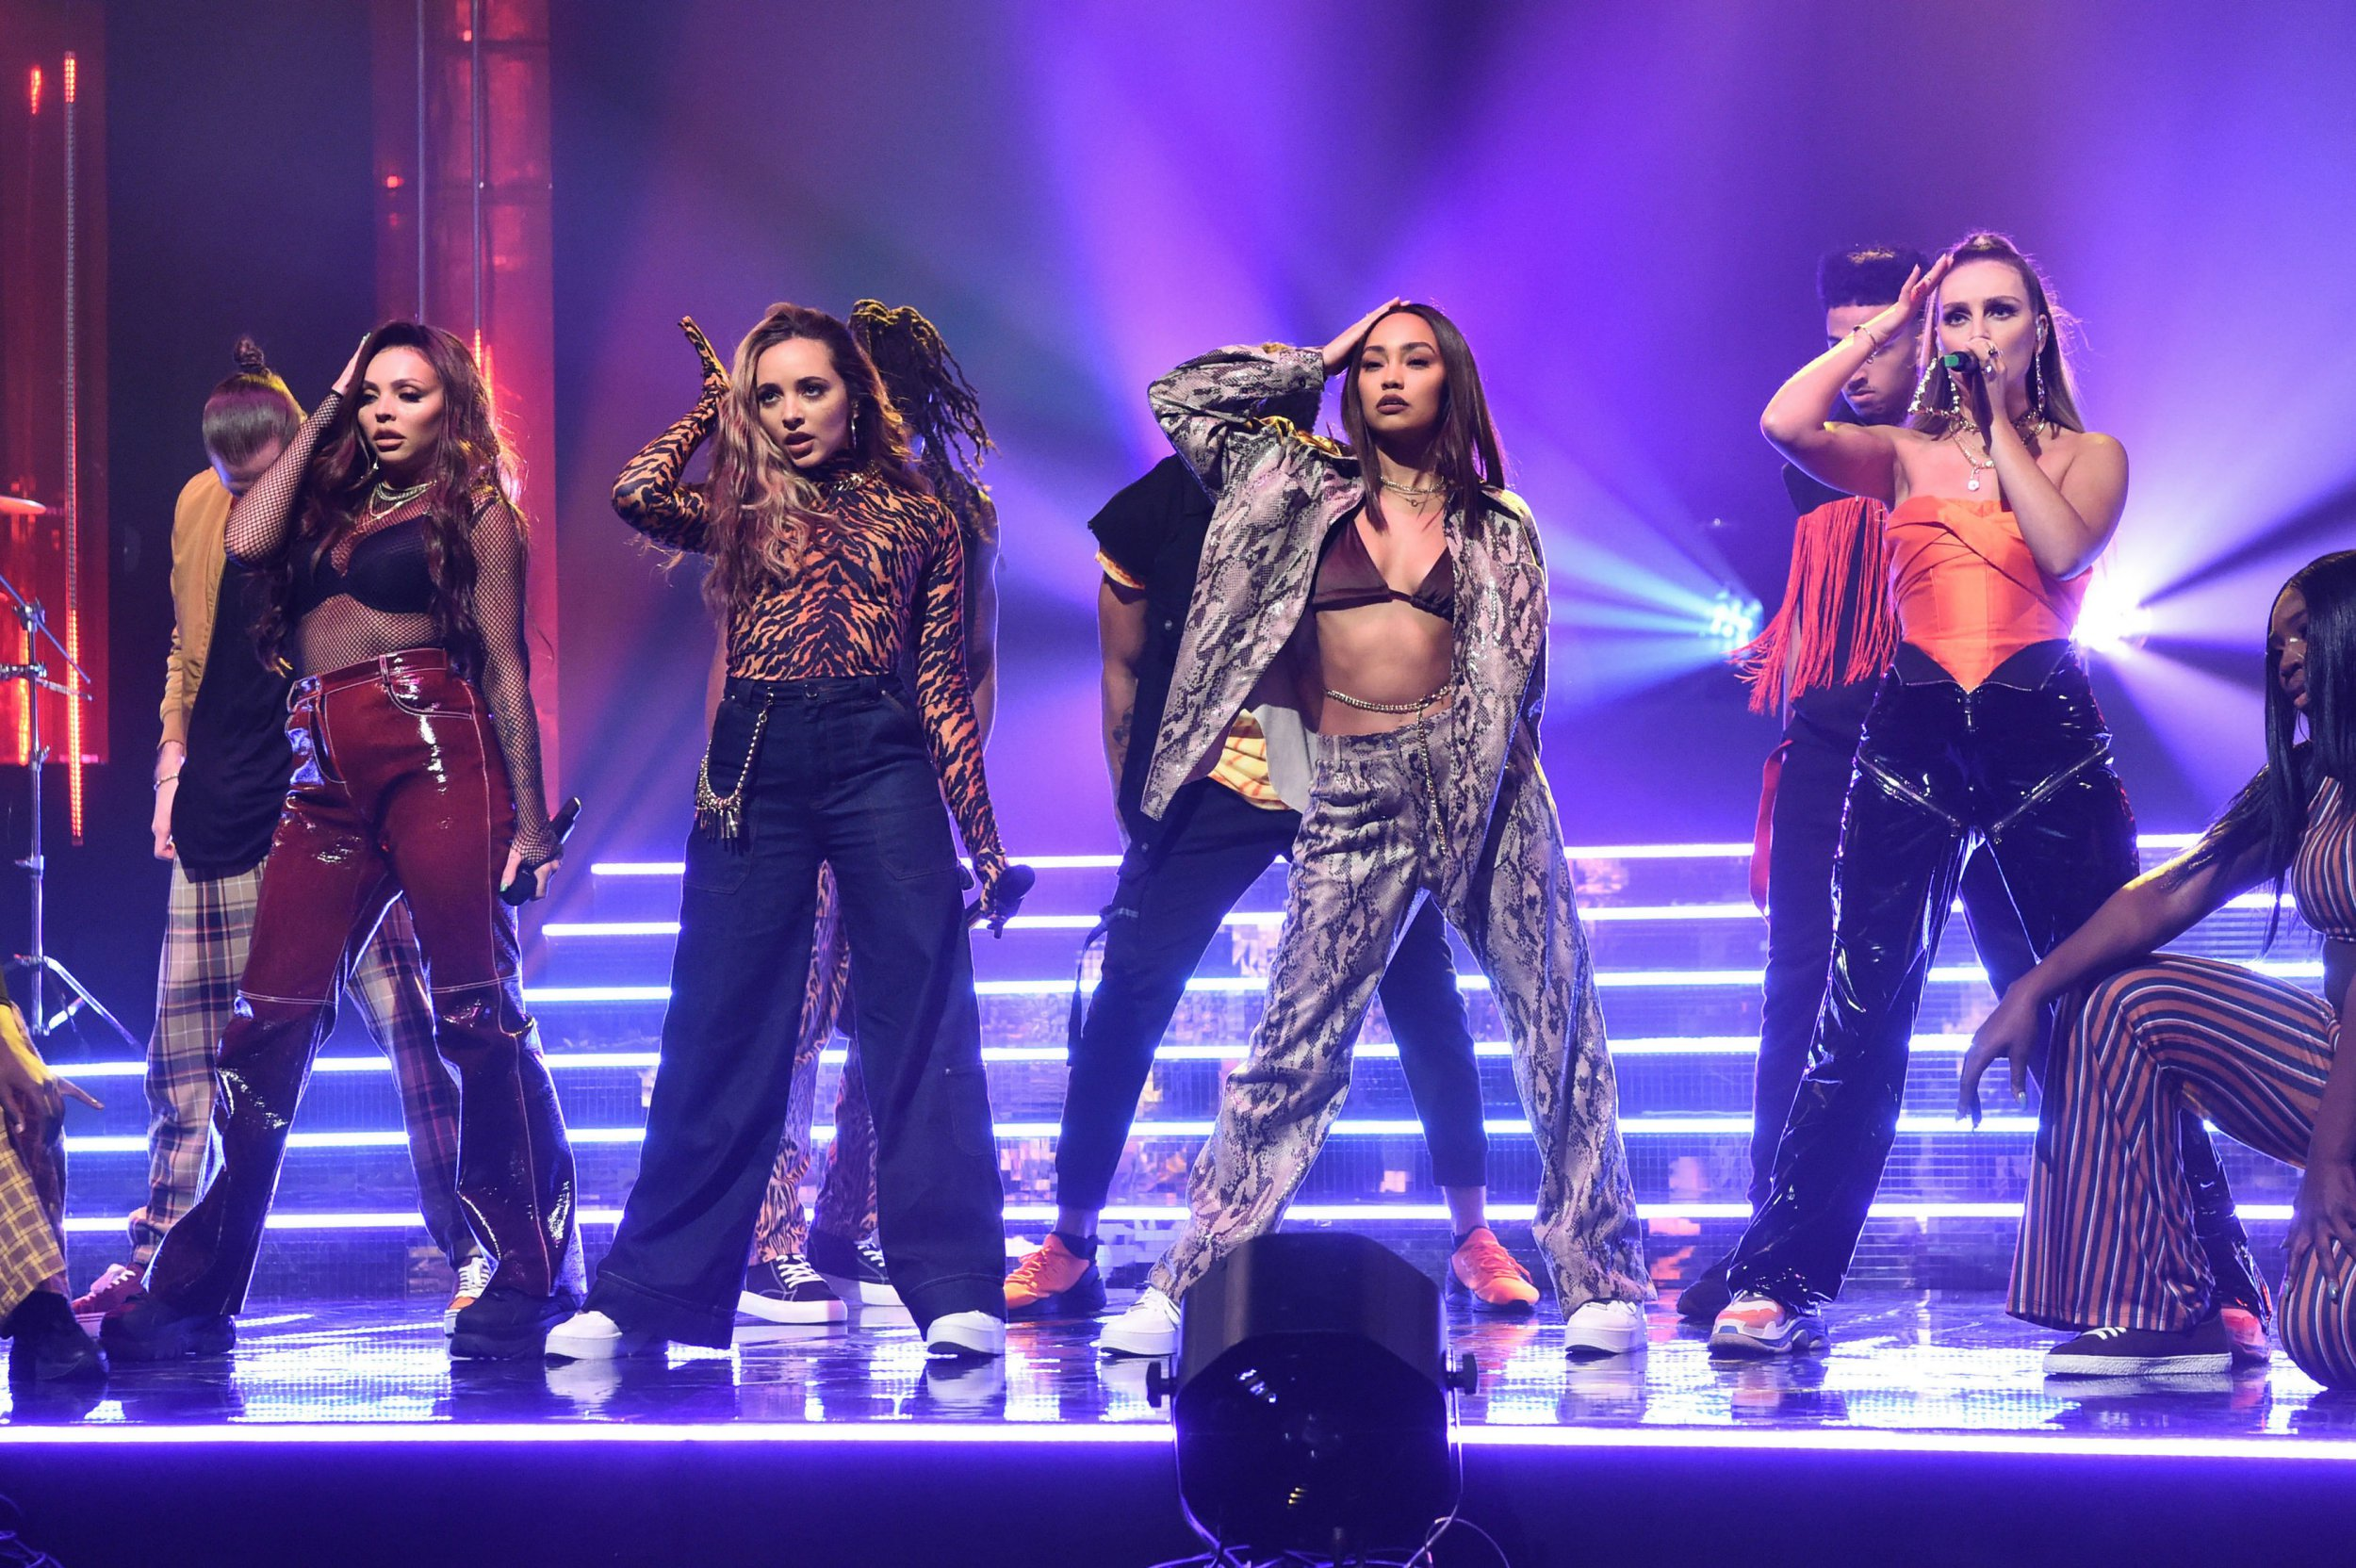 Little Mix and Miley Cyrus confirmed for Radio 1's Big Weekend and it's pop heaven